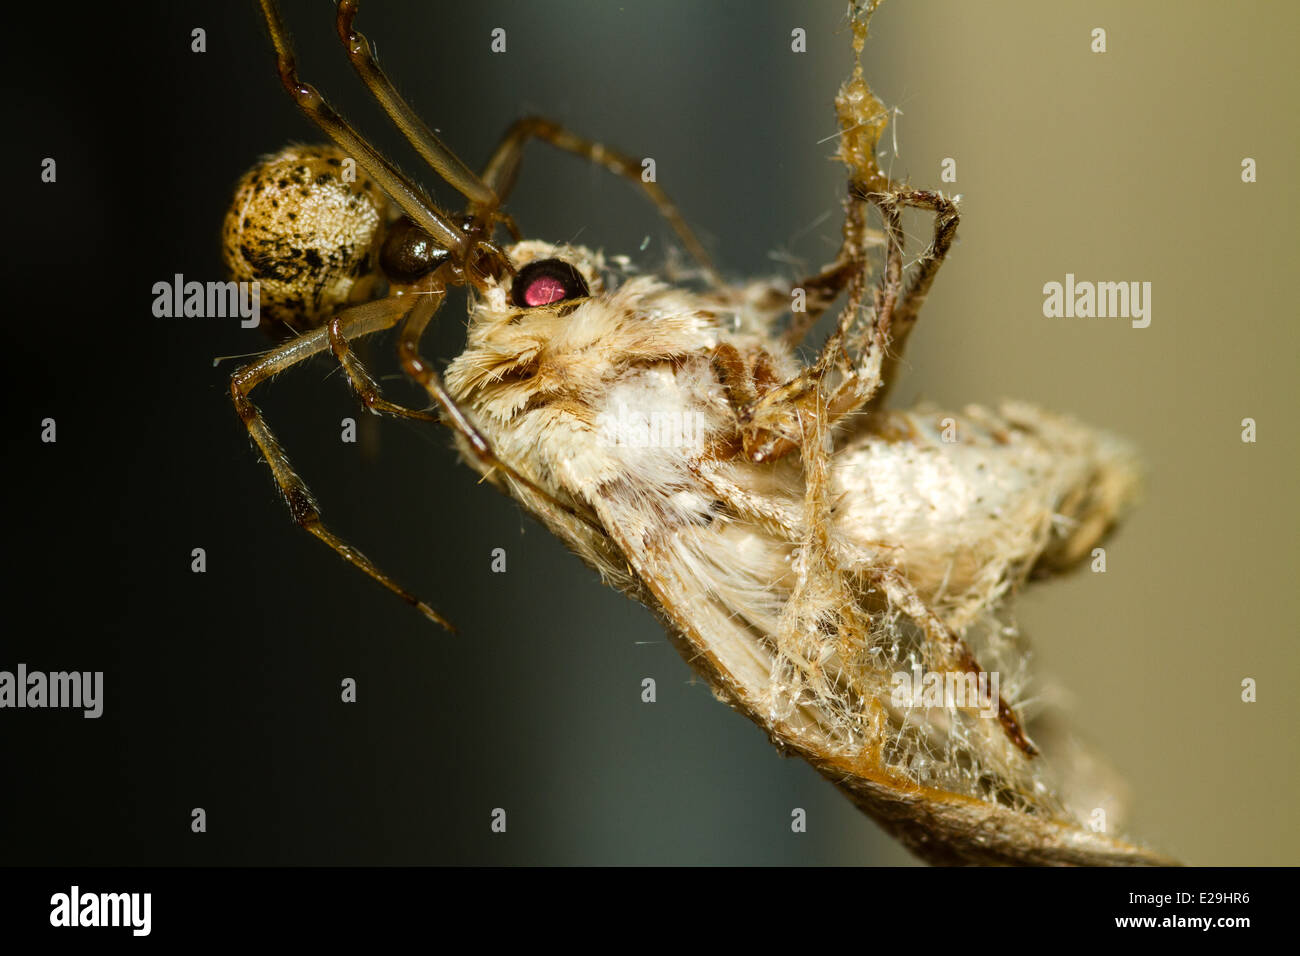 Small Orb Weaving Spider with captured Prey - Stock Image